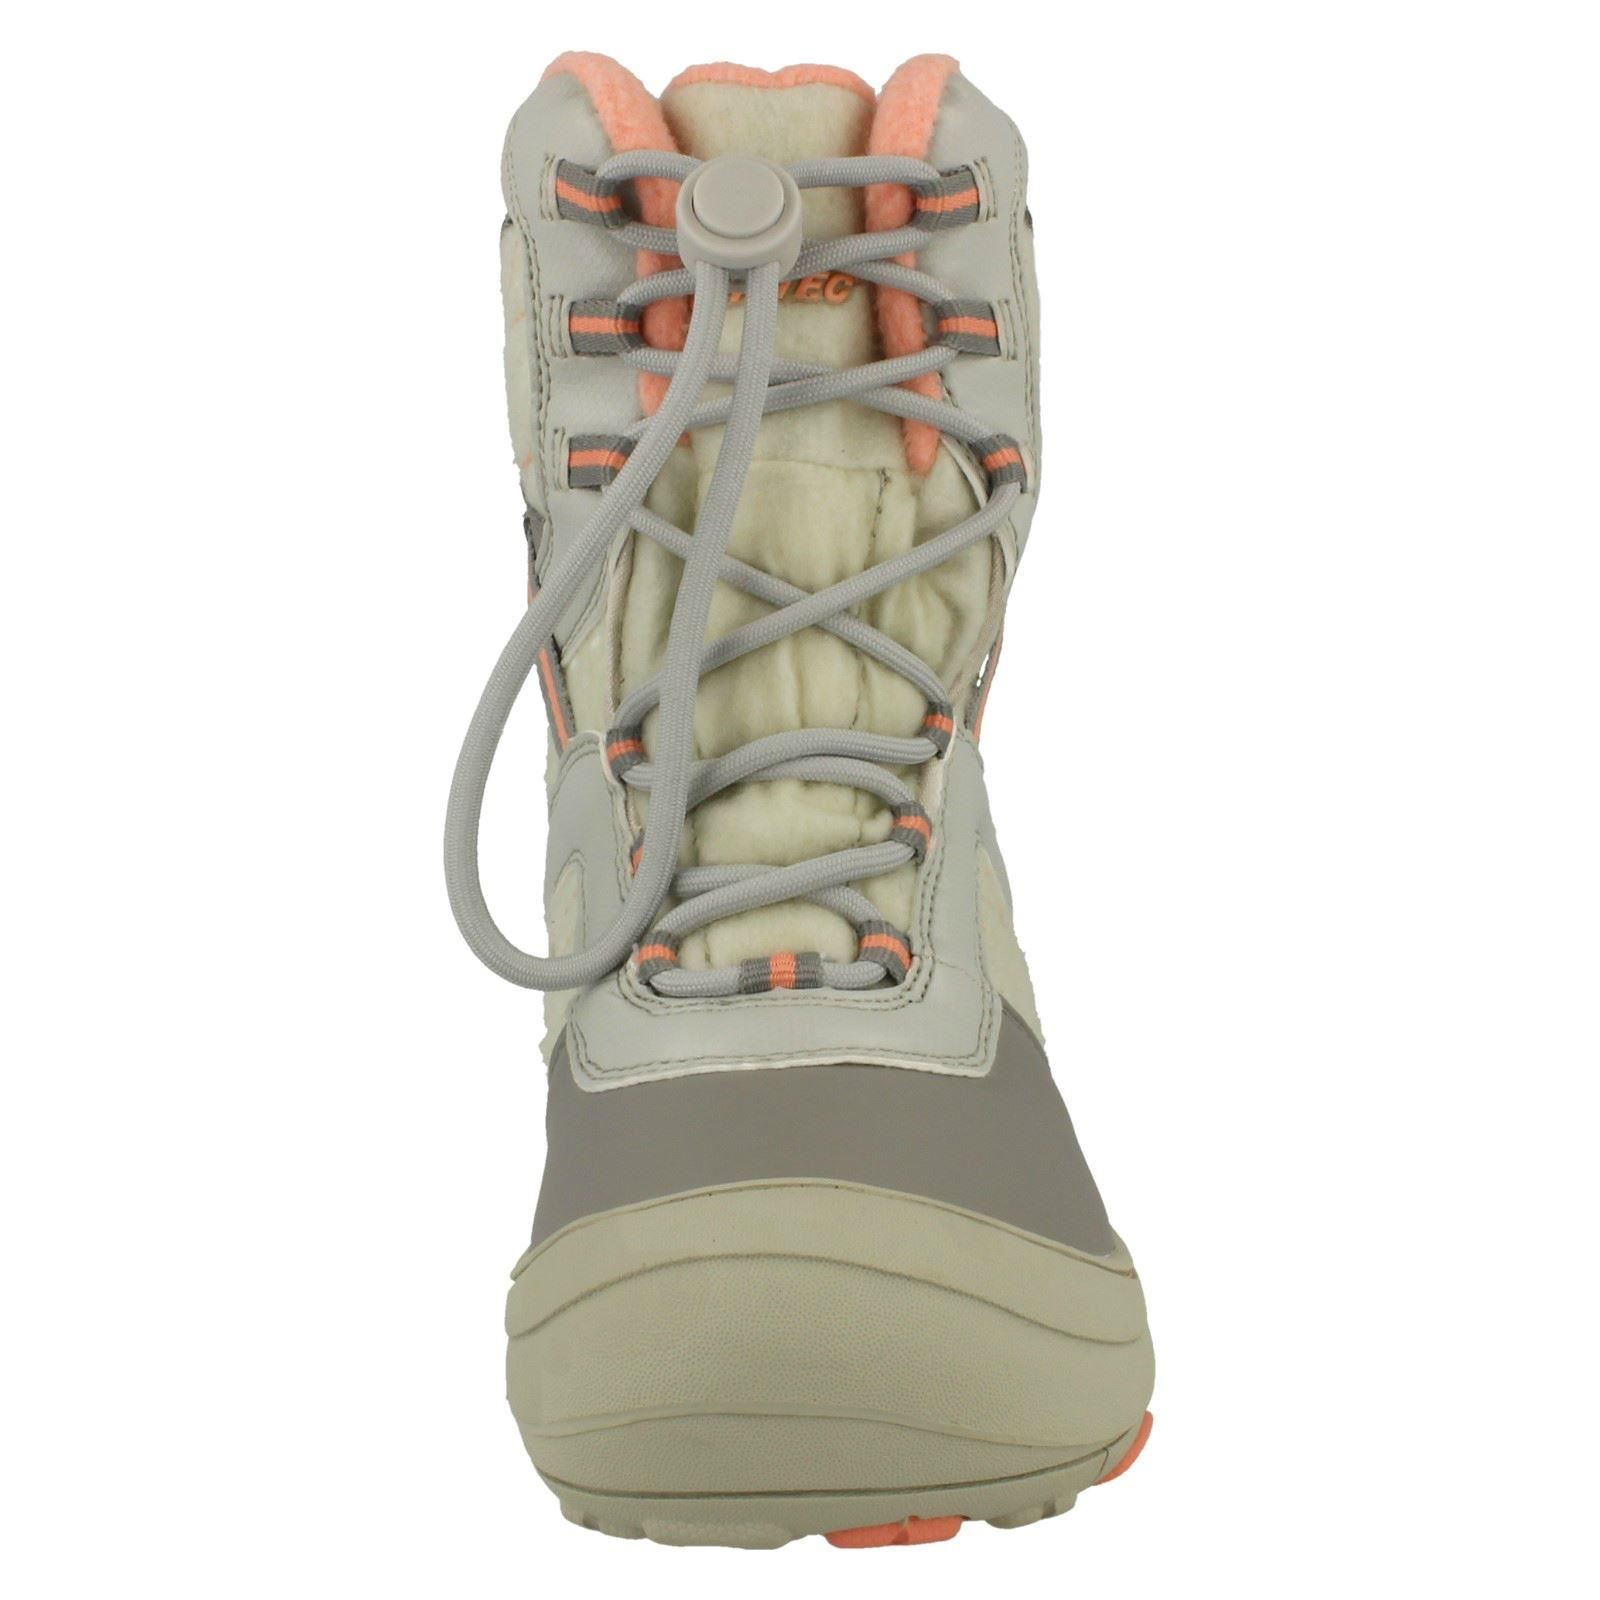 Girls Hi-Tec Casual Speed Lace Snow Boots /'Slalom 200/'